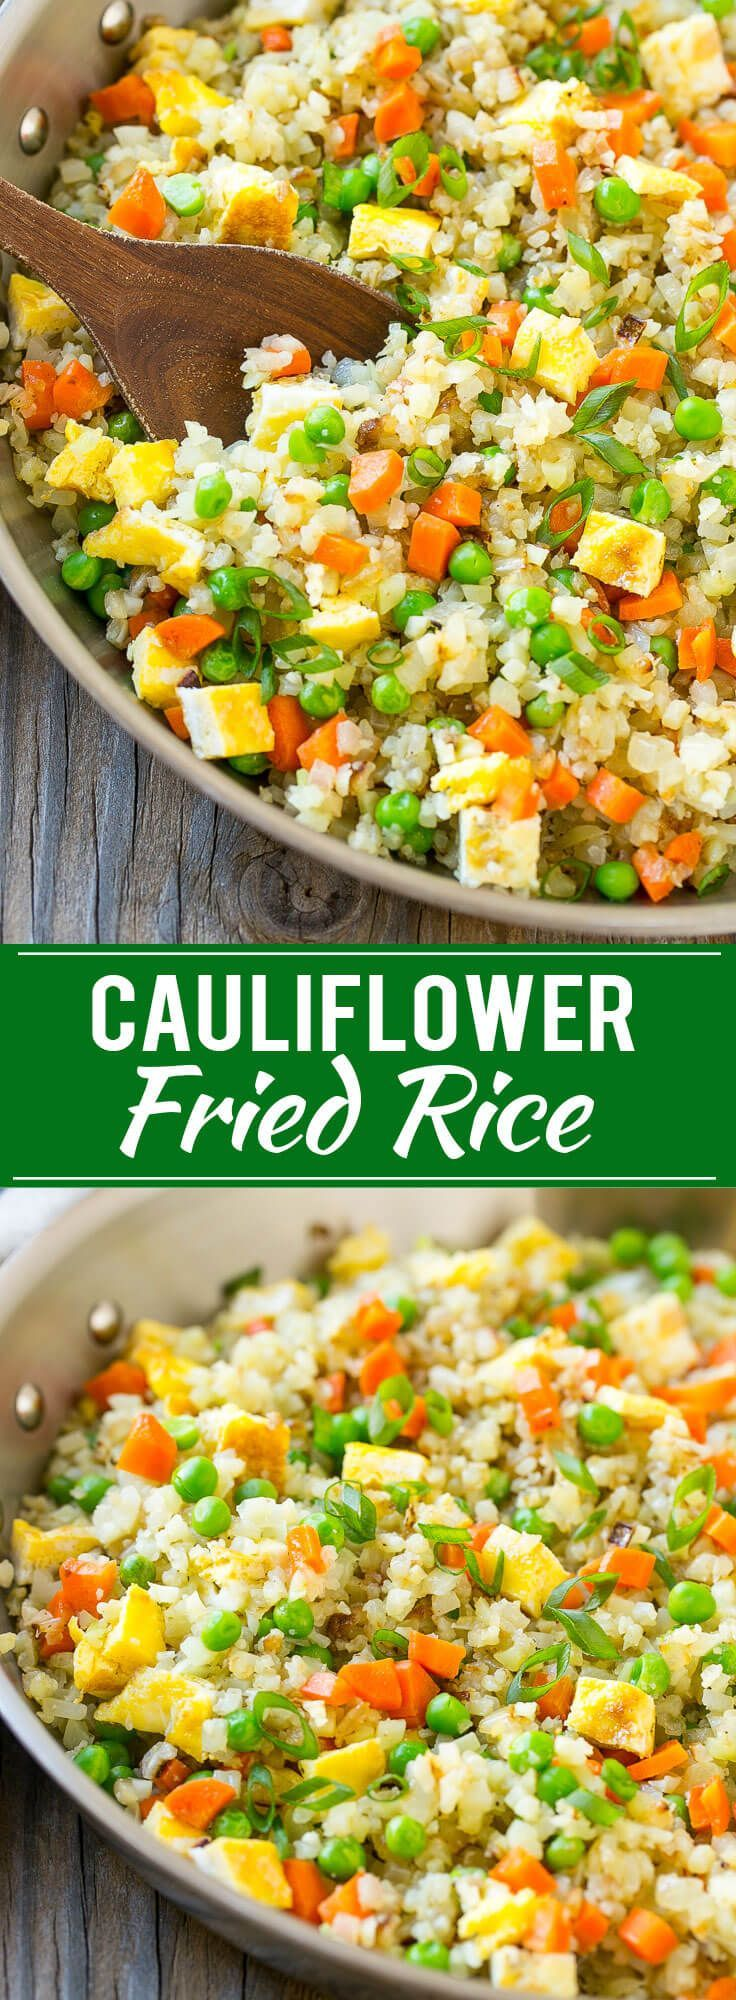 Cauliflower Fried Rice | Cauliflower Rice | Low Carb Rice | Cauliflower Rice Recipe | Cauliflower Recipes